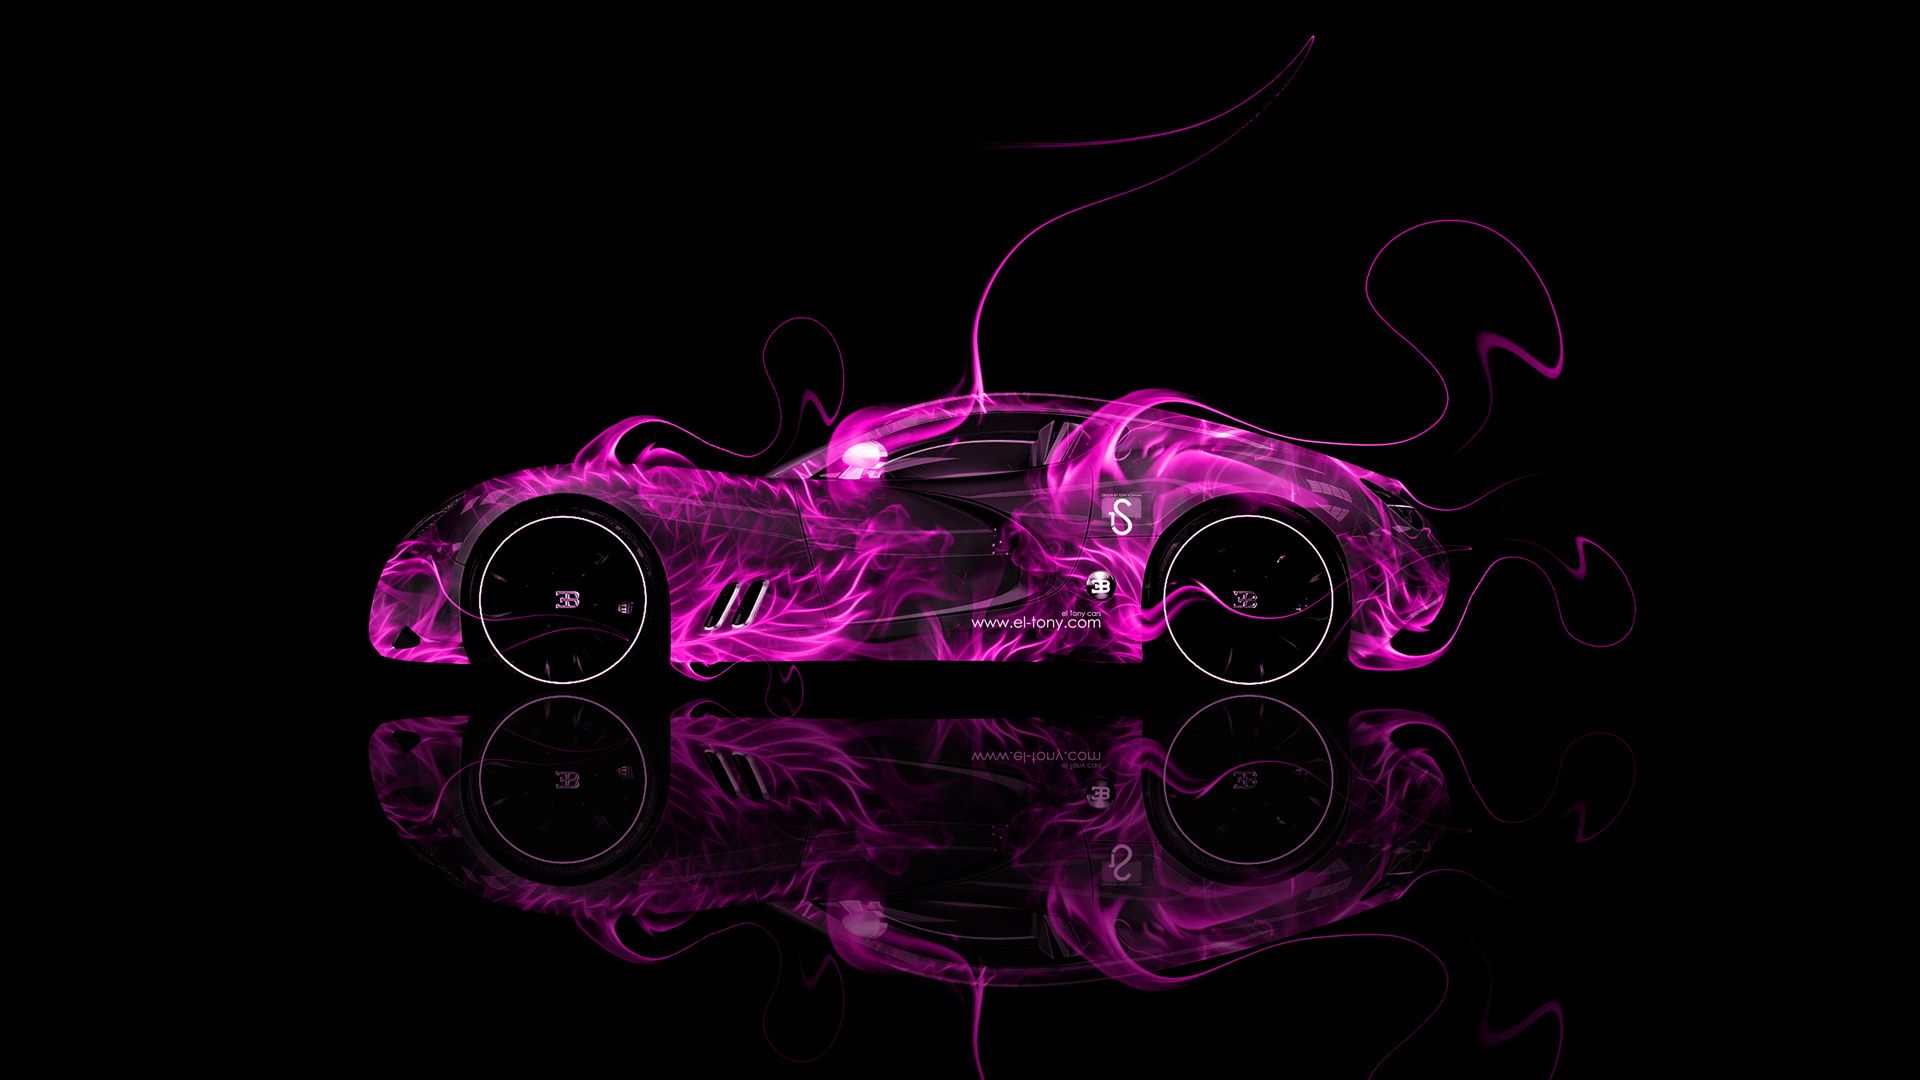 Charmant Gold Bugatti Veyron With Neon | Fire Car Abstract 2013 Hd Wallpapers Design  By Tony Kokhan